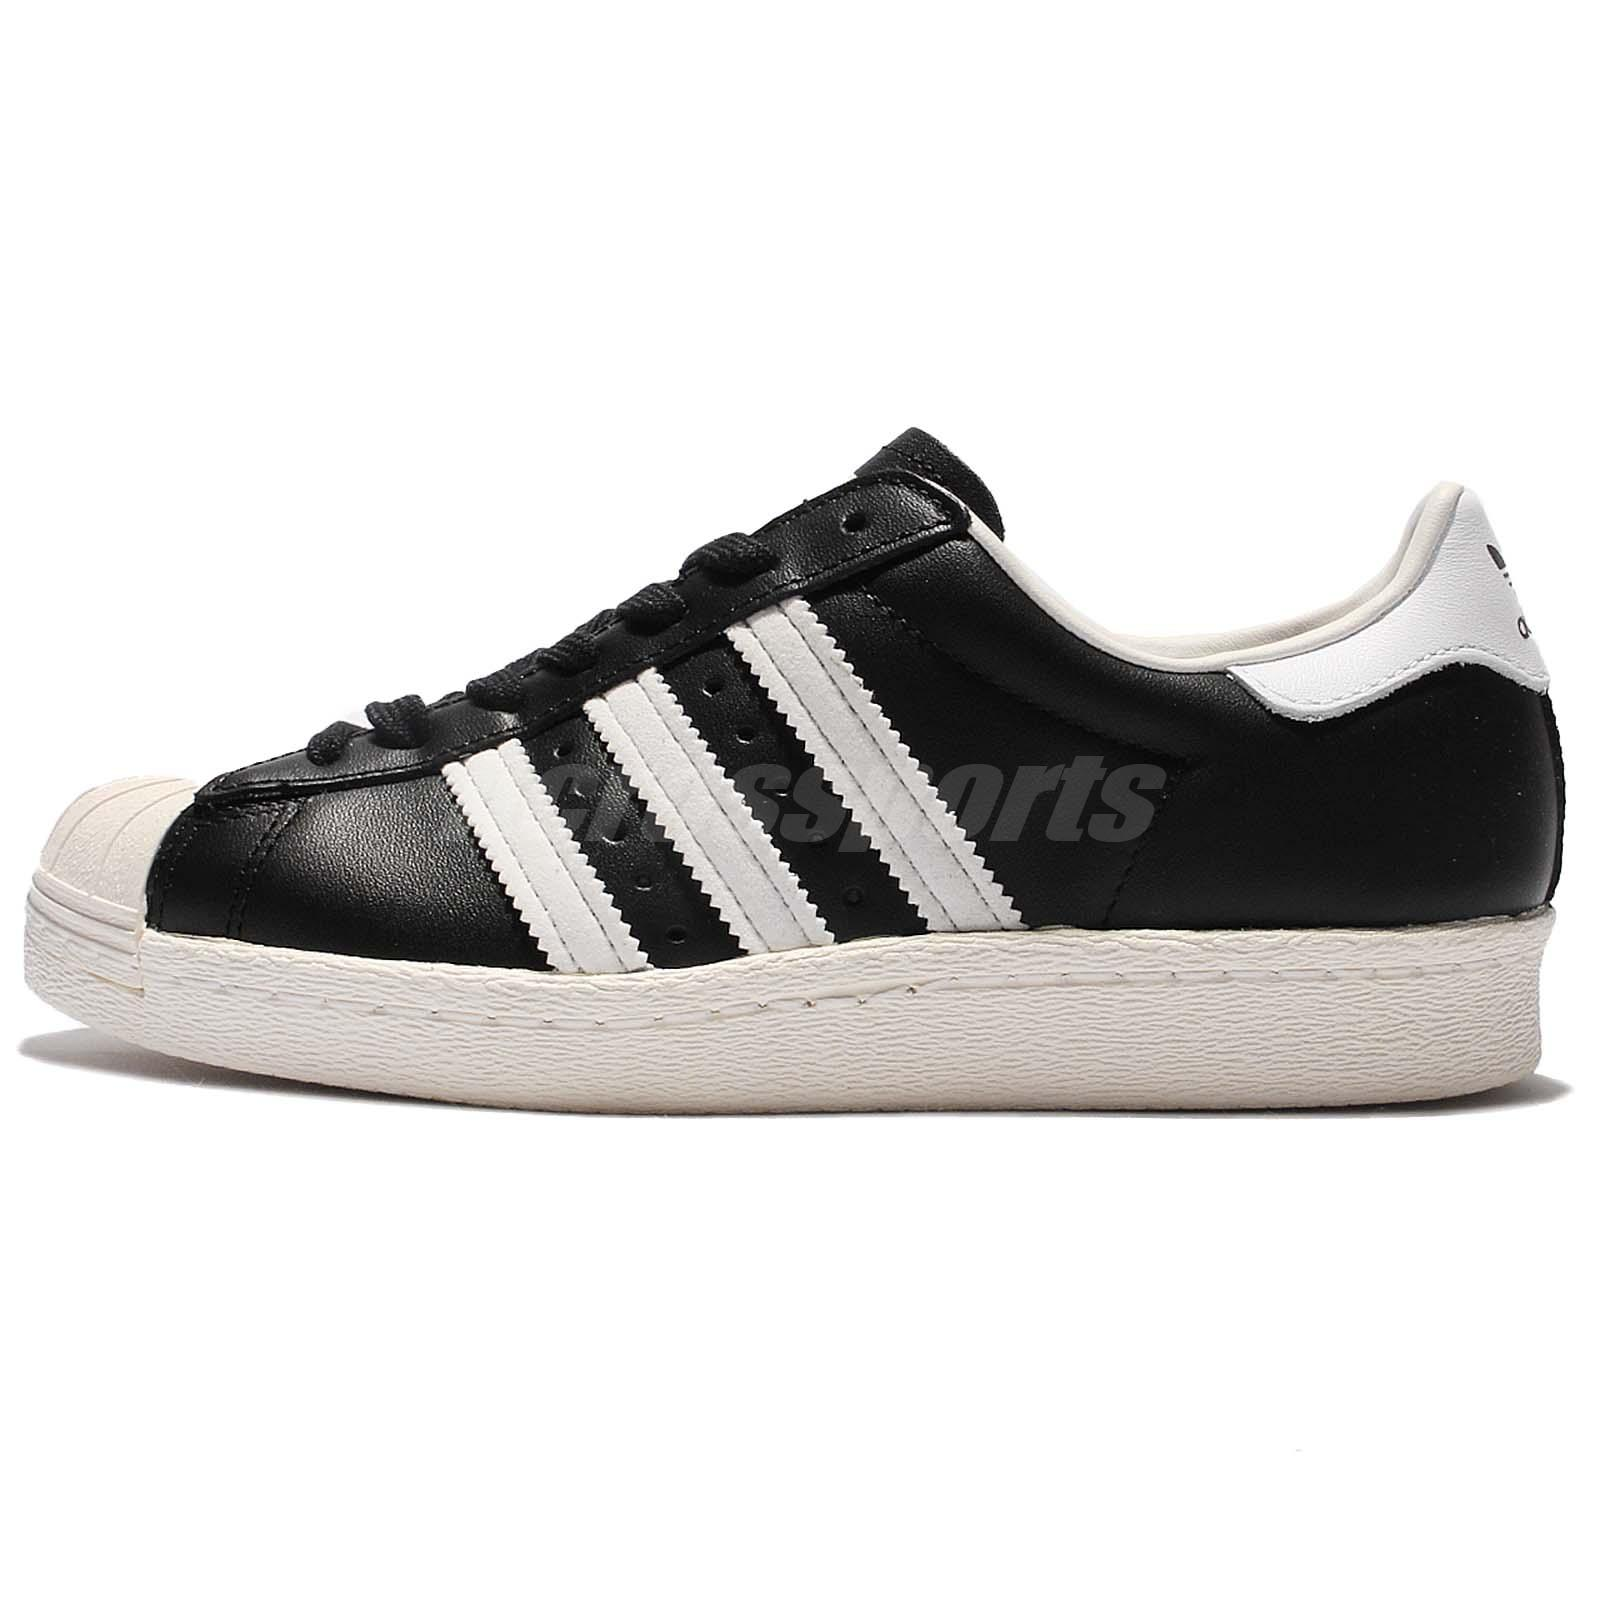 separation shoes 82145 5ae37 adidas Originals Superstar 80s Black White Men Classic Shoes Sneakers G61069